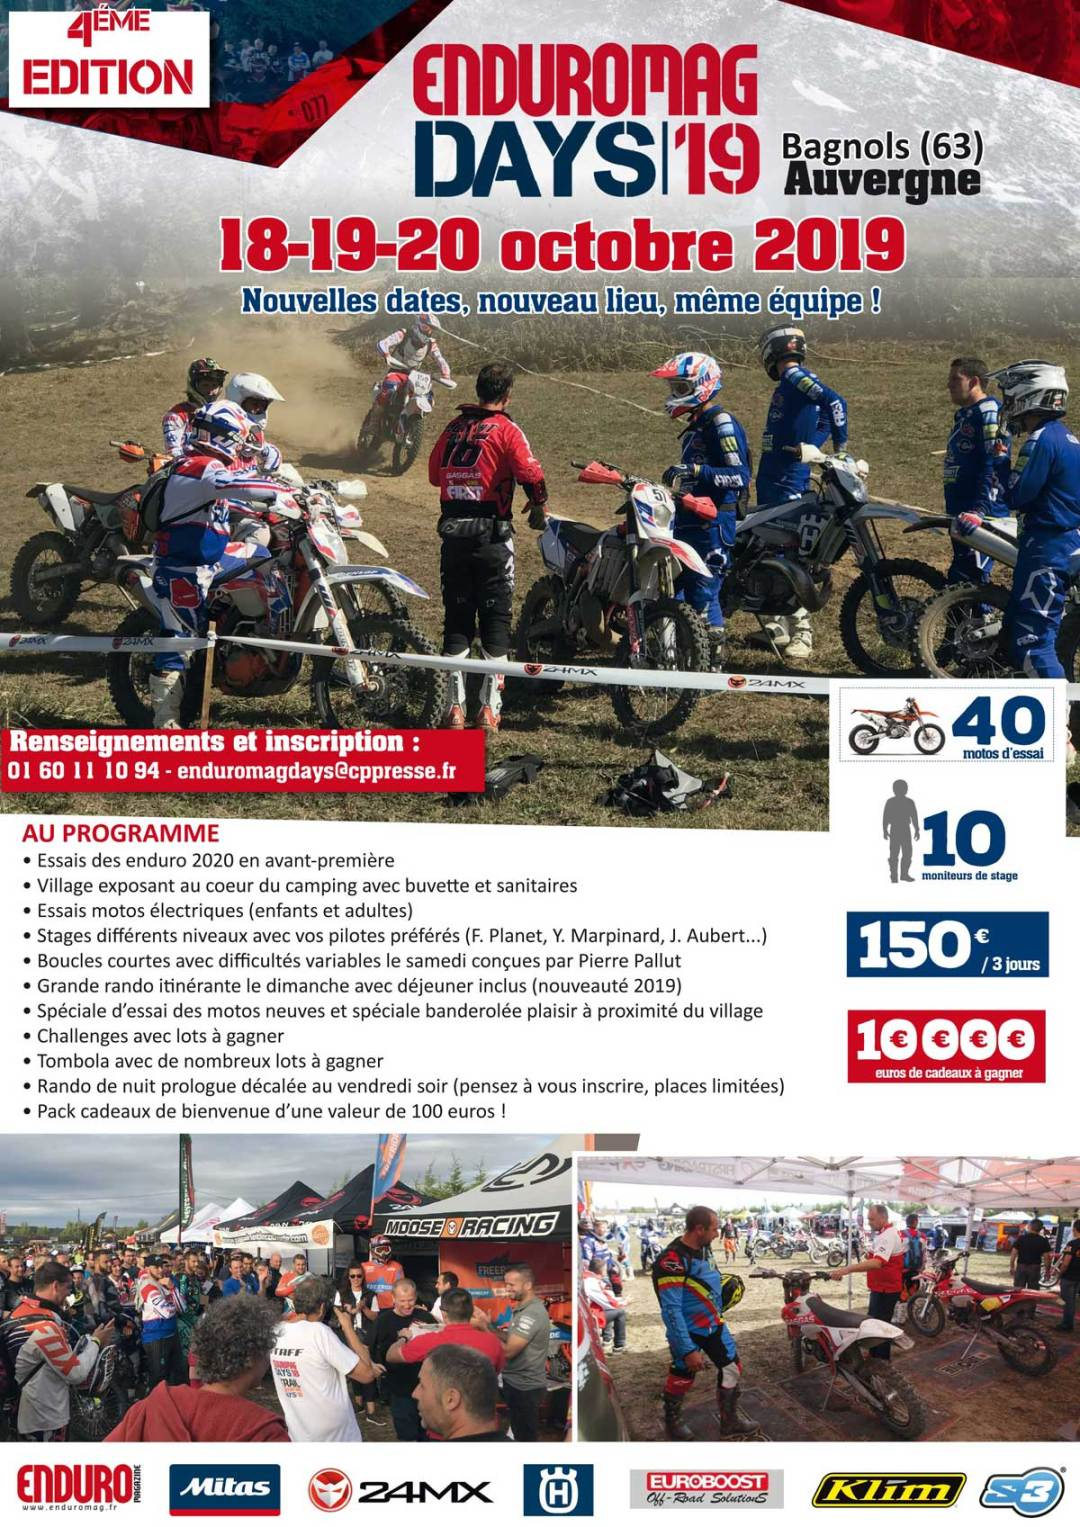 Enduromag Days 2019